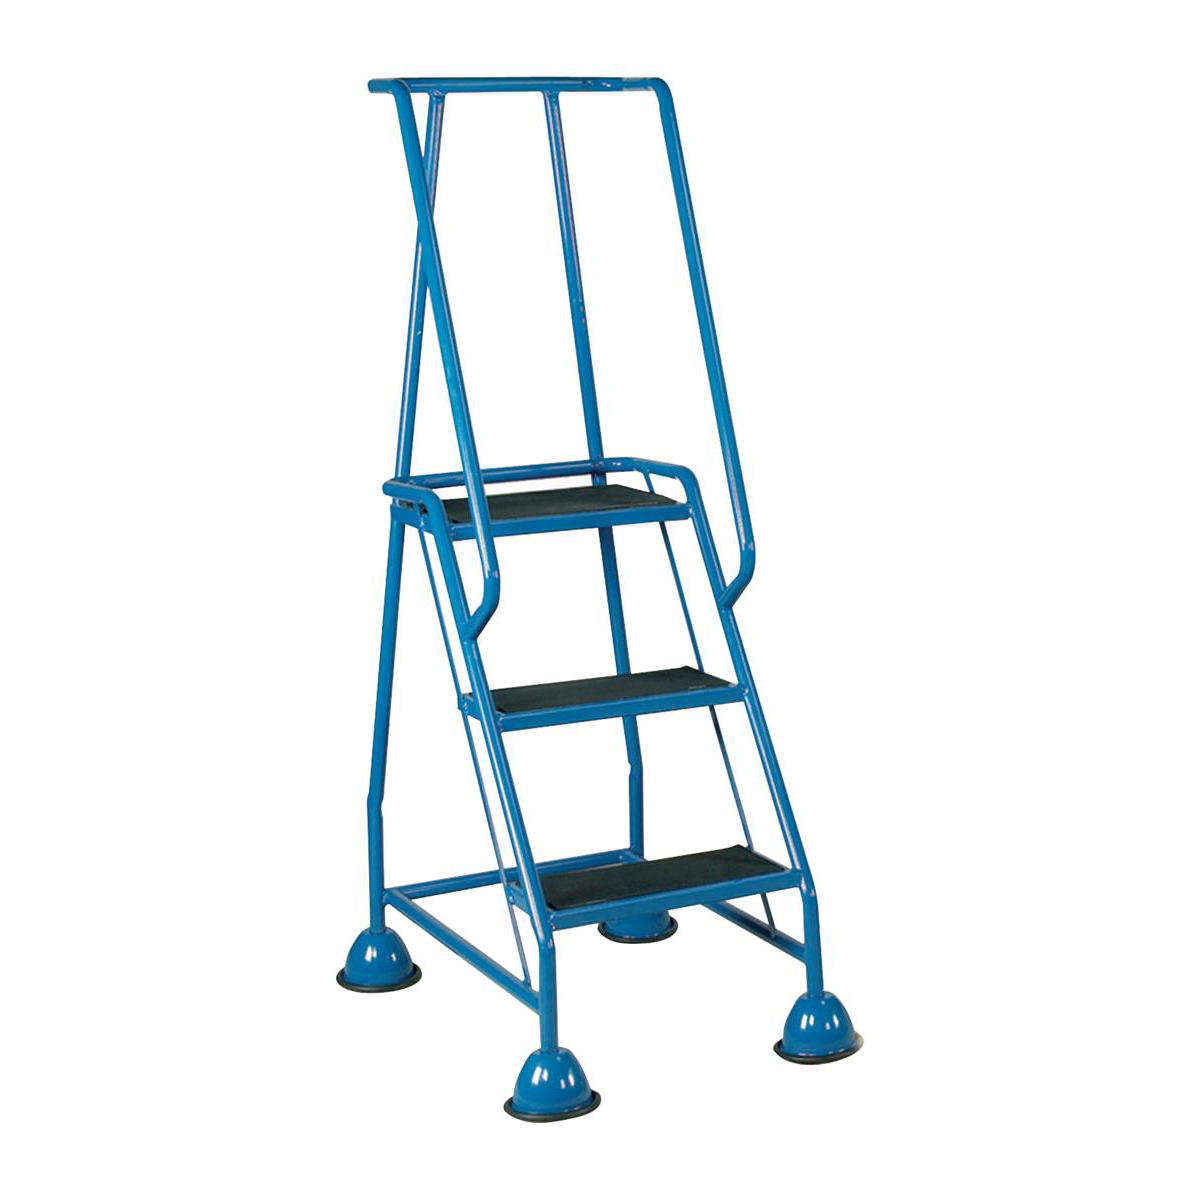 Steps Mobile Steps on Retractable Castors Double Handrails Three Tread W580xD795xxH1425mm Blue